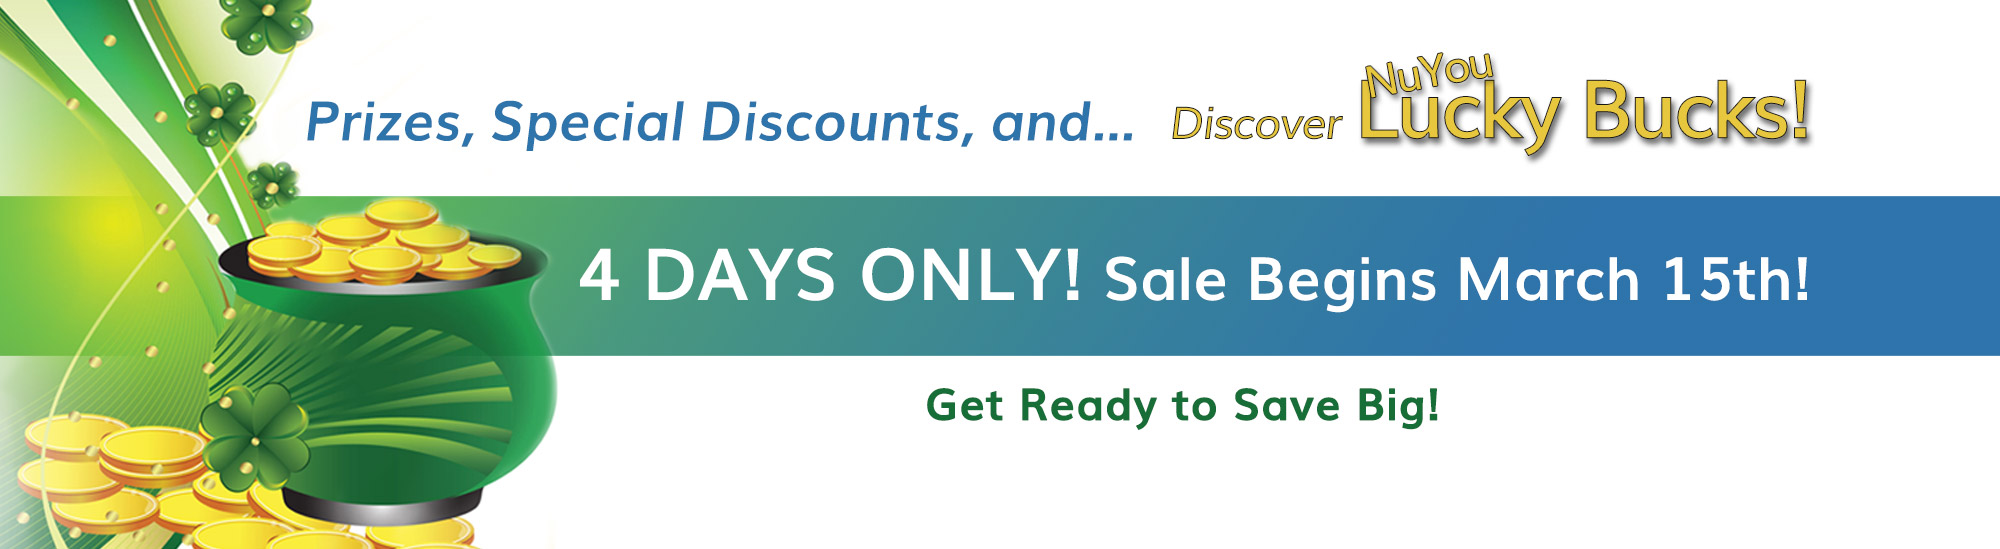 NuYou Weight Loss St. Patrick's Day Sale March 15 - 19, 2018